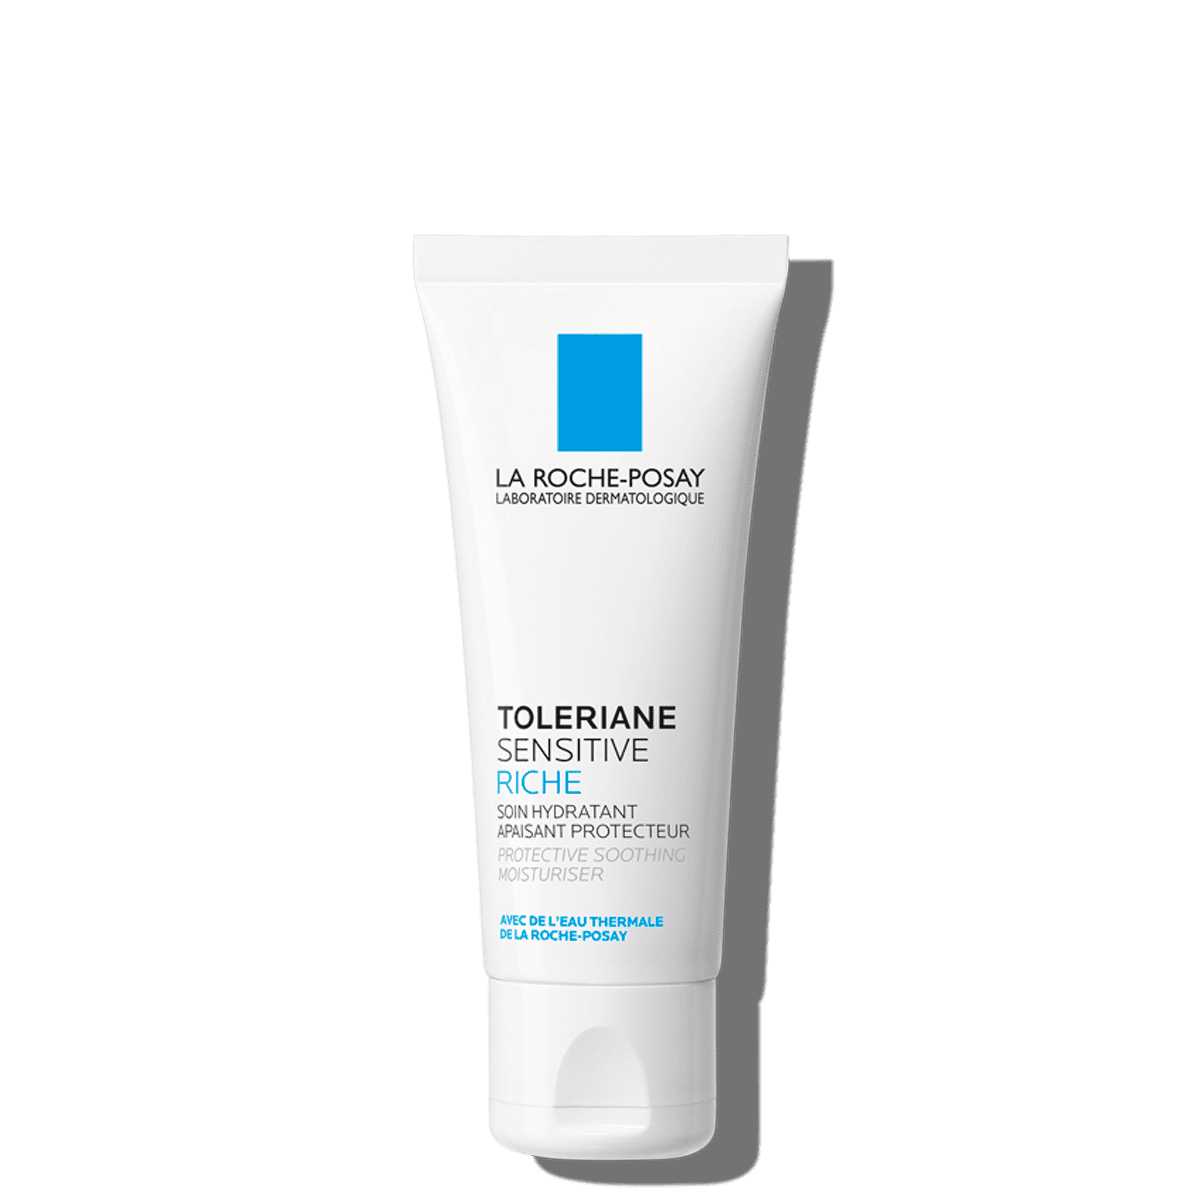 La Roche Posay ProductPage Sensitive Allergic Toleriane Riche 40ml 343